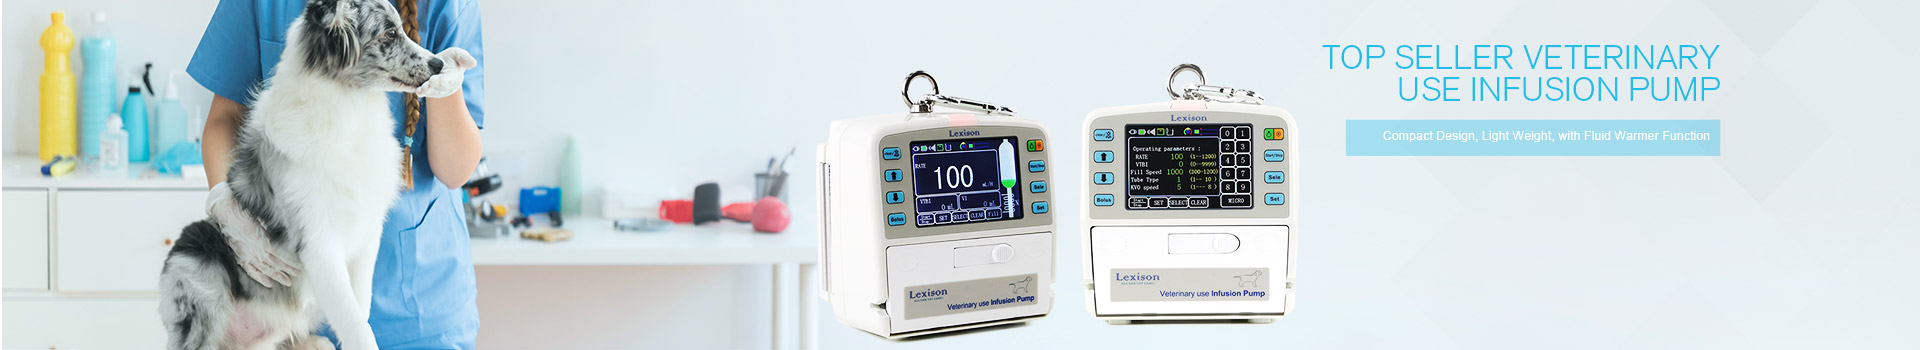 TOP SELLER Veterinary use Infusion Pump